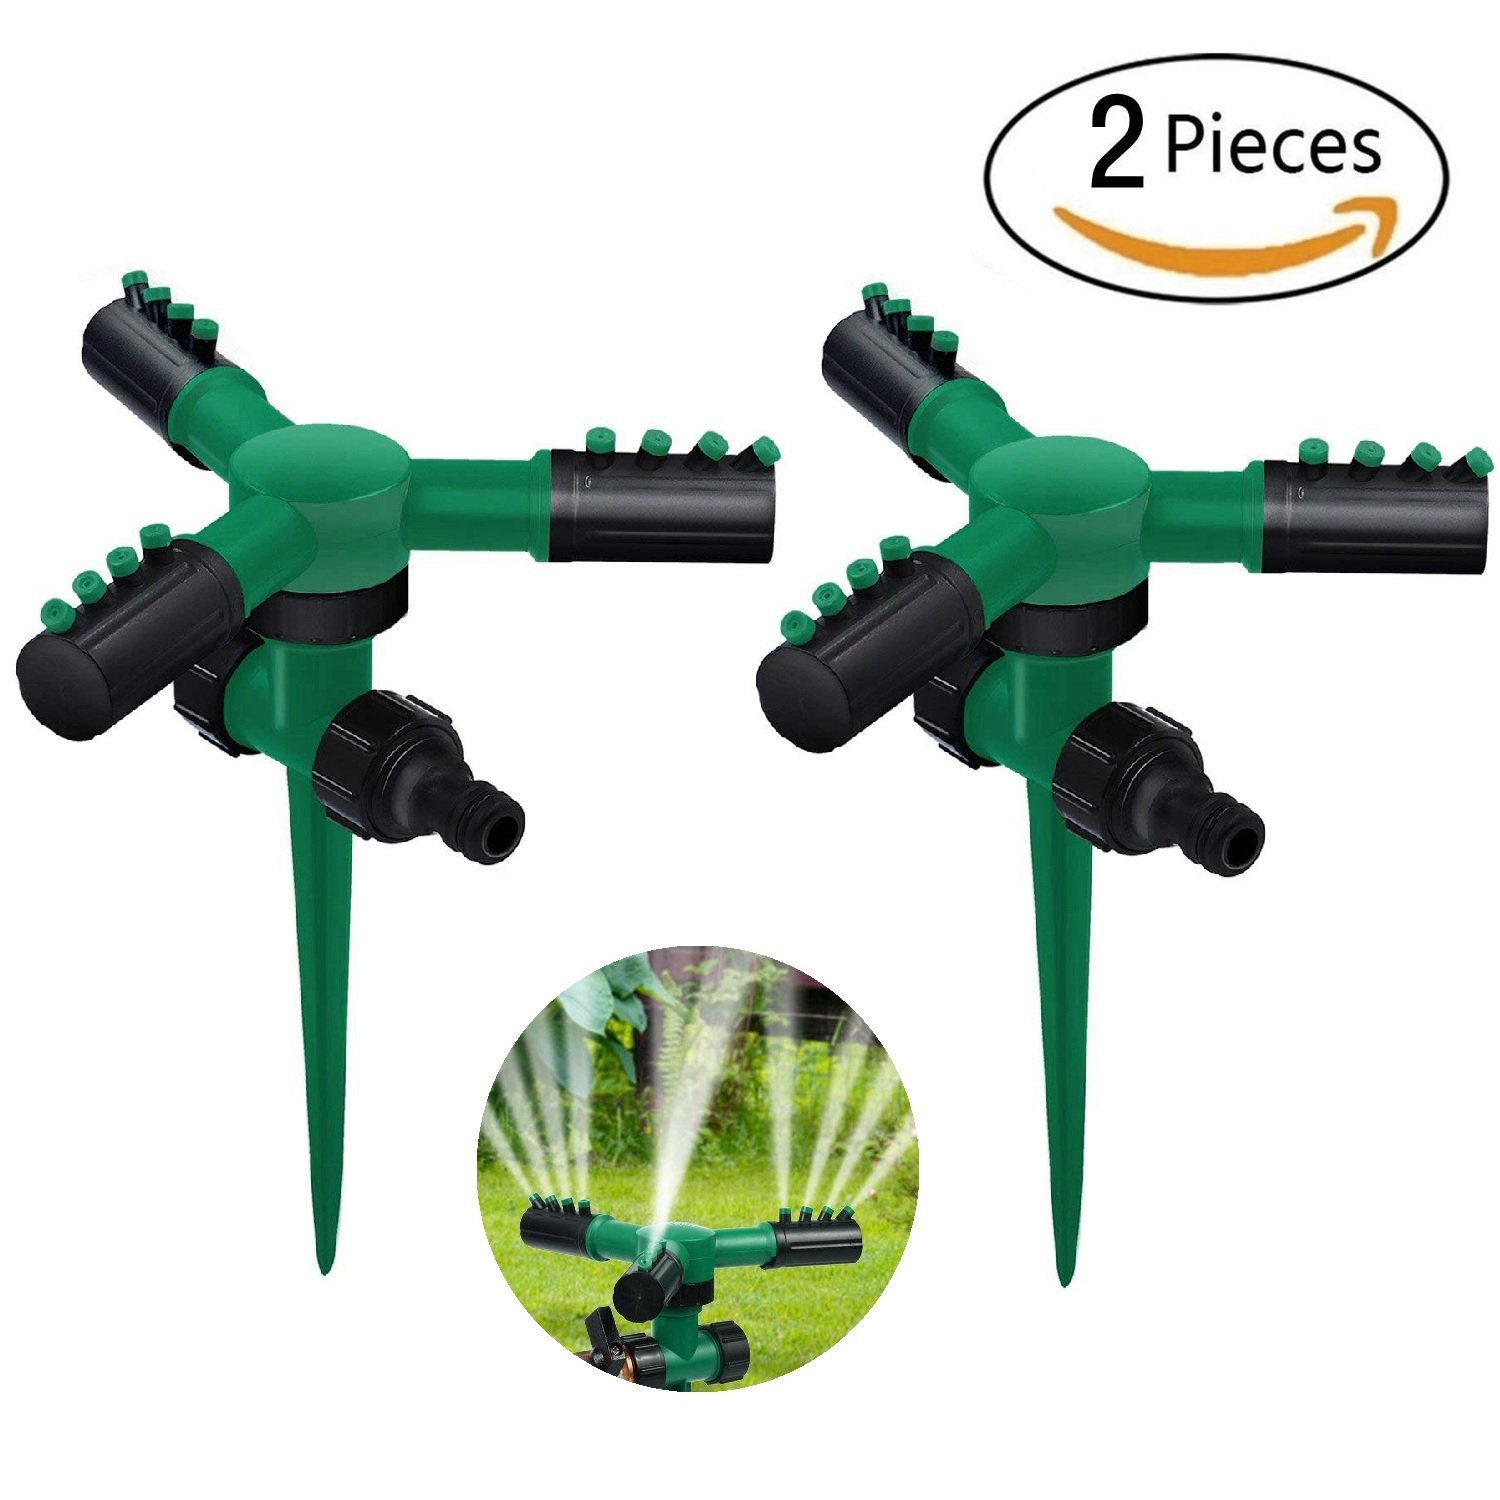 Anndason 2 Pcs Garden Lawn Sprinklers,Automatic 360° Rotating Adjustable Garden Water Lawn Sprinkler System with Durable 3 Arm Spray and Spike Base